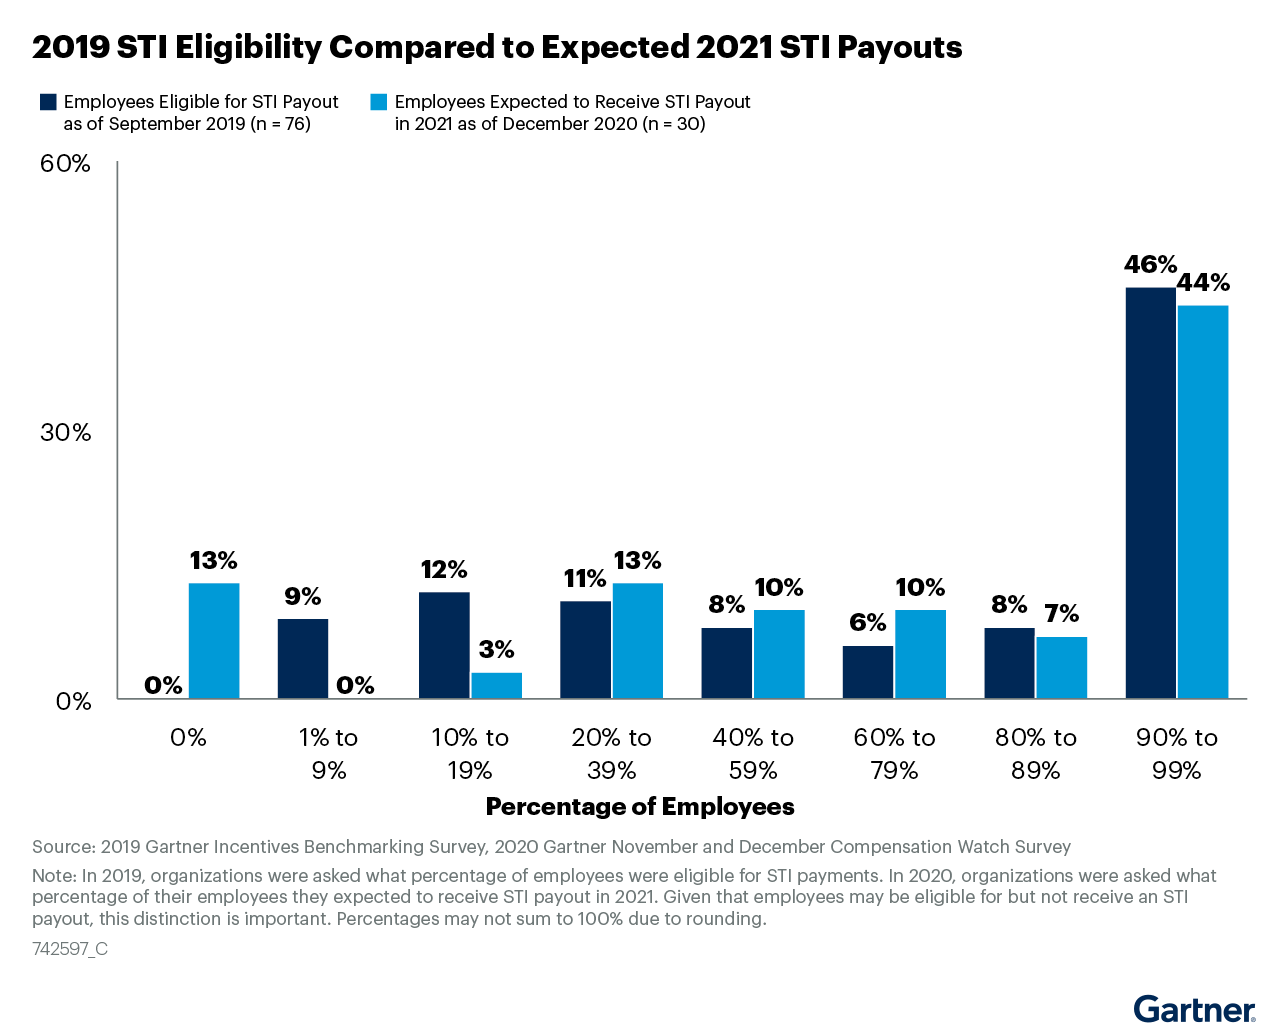 Figure 8: 2019 STI Eligibility Compared to Expected 2021 STI Payouts